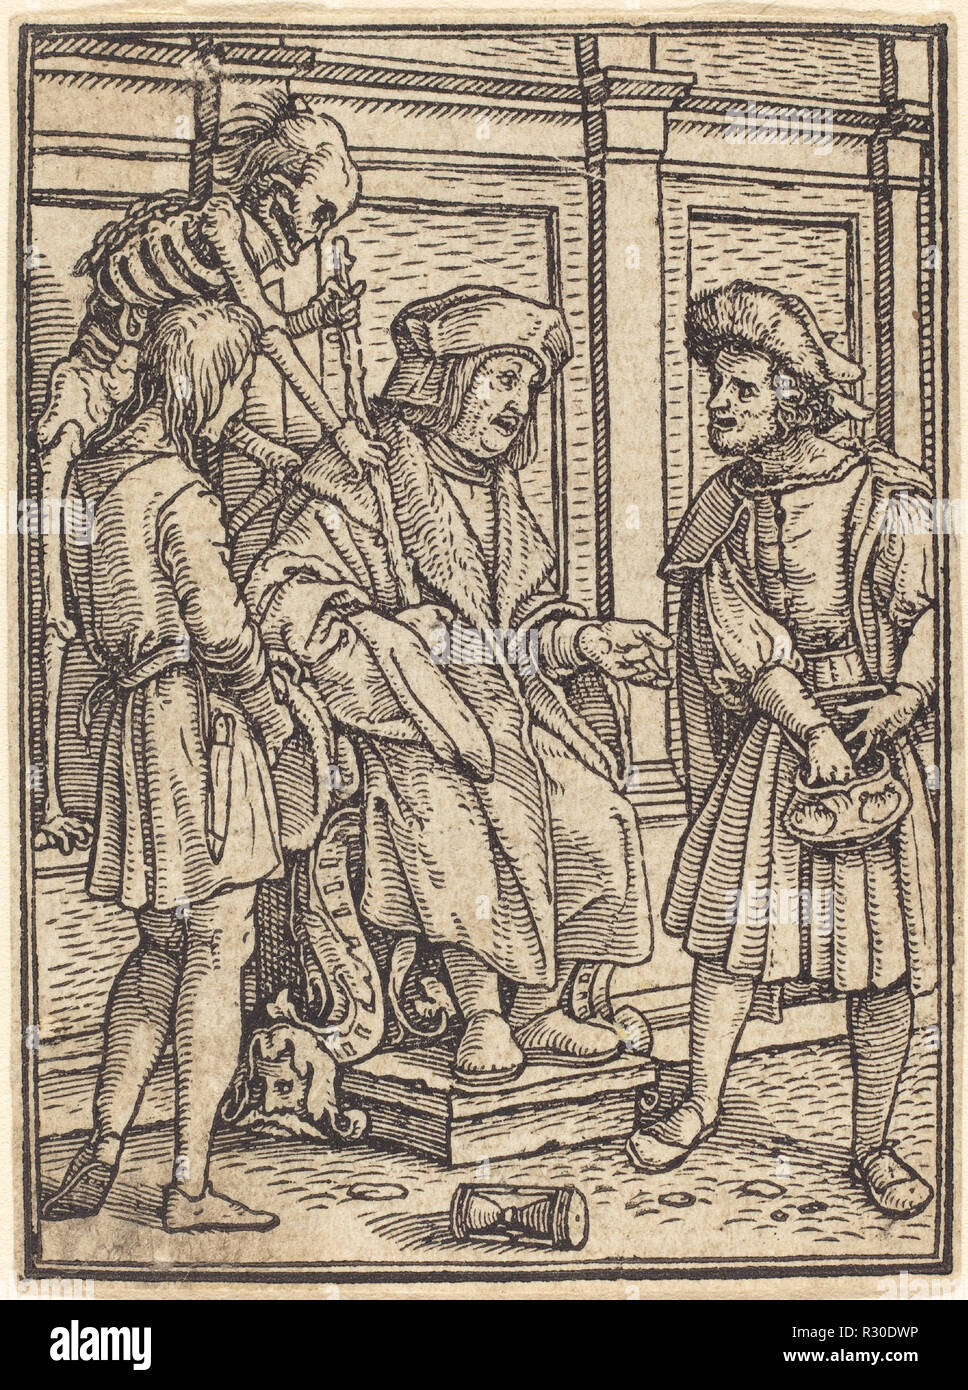 Judge. Medium: woodcut. Museum: National Gallery of Art, Washington DC. Author: Hans Holbein the Younger. - Stock Image